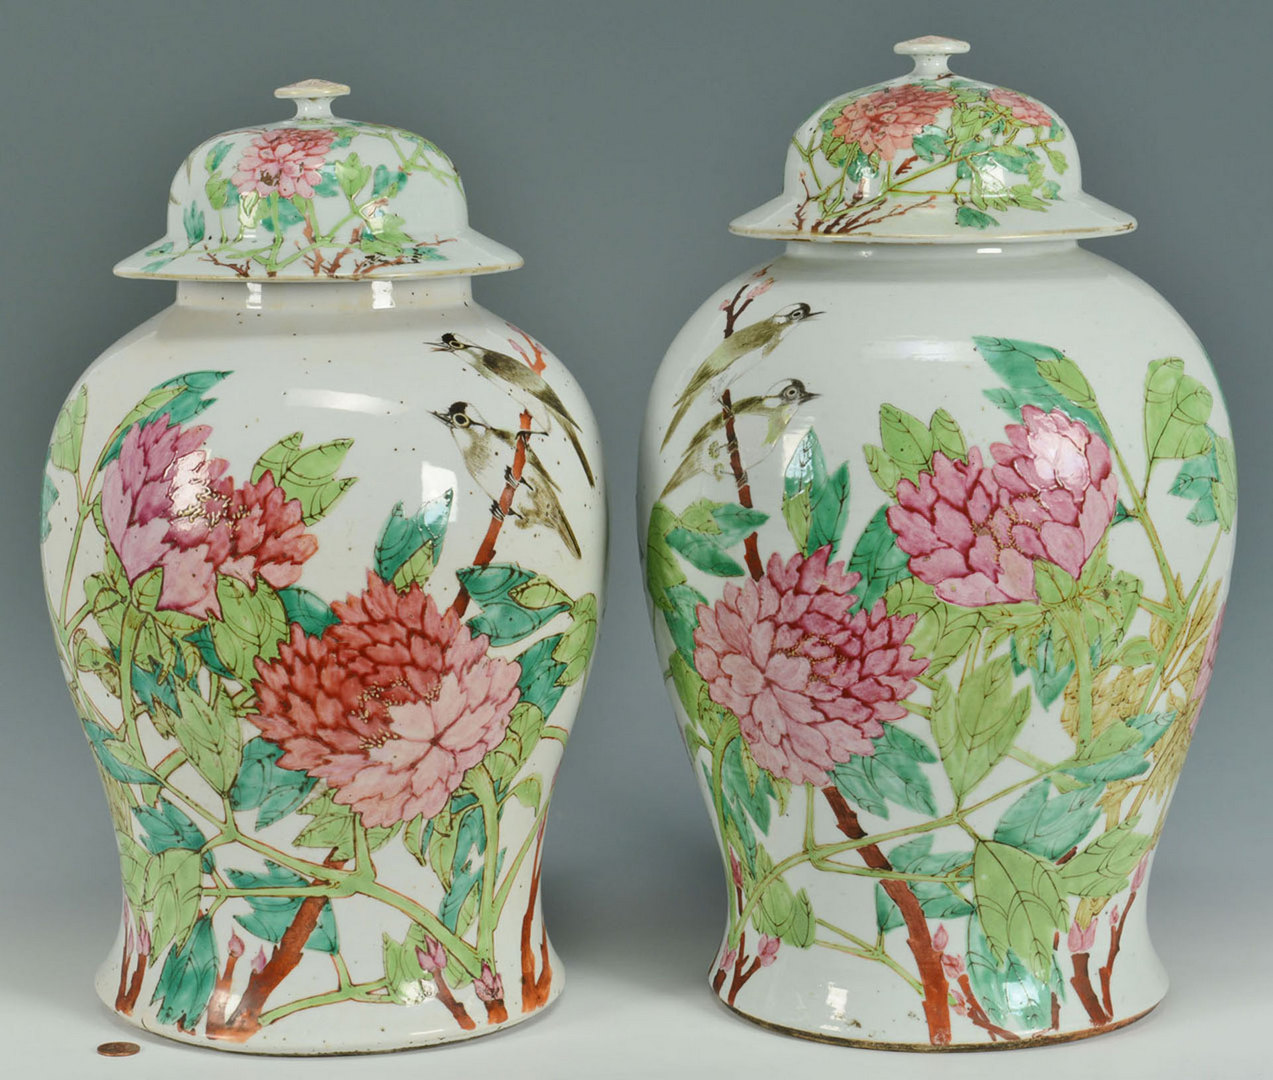 Lot 14: Pr. of Large Chinese Famille Rose Ginger Jars